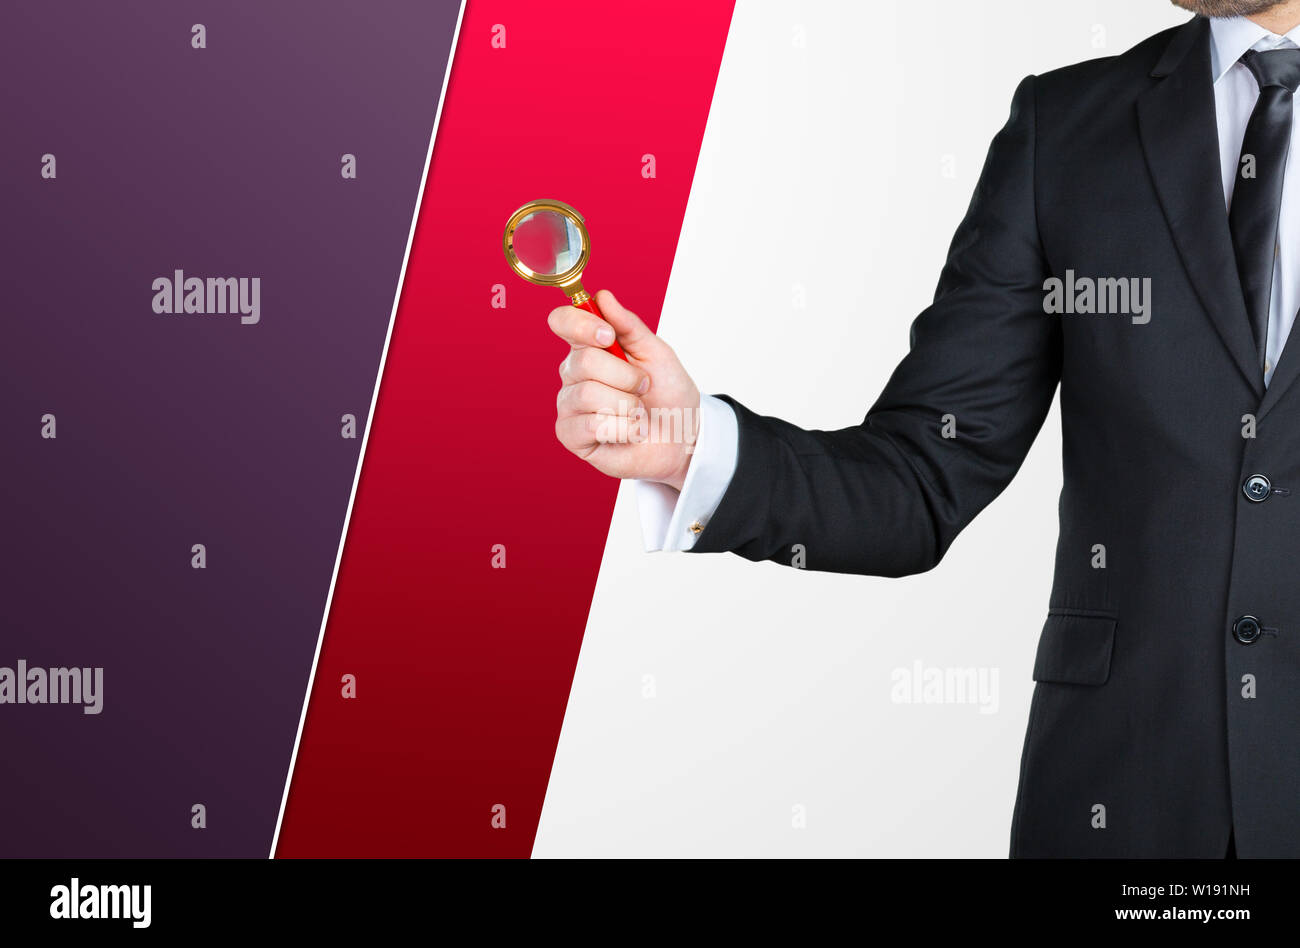 Unrecognizable businessman holding magnifying glass. Business concept Stock Photo